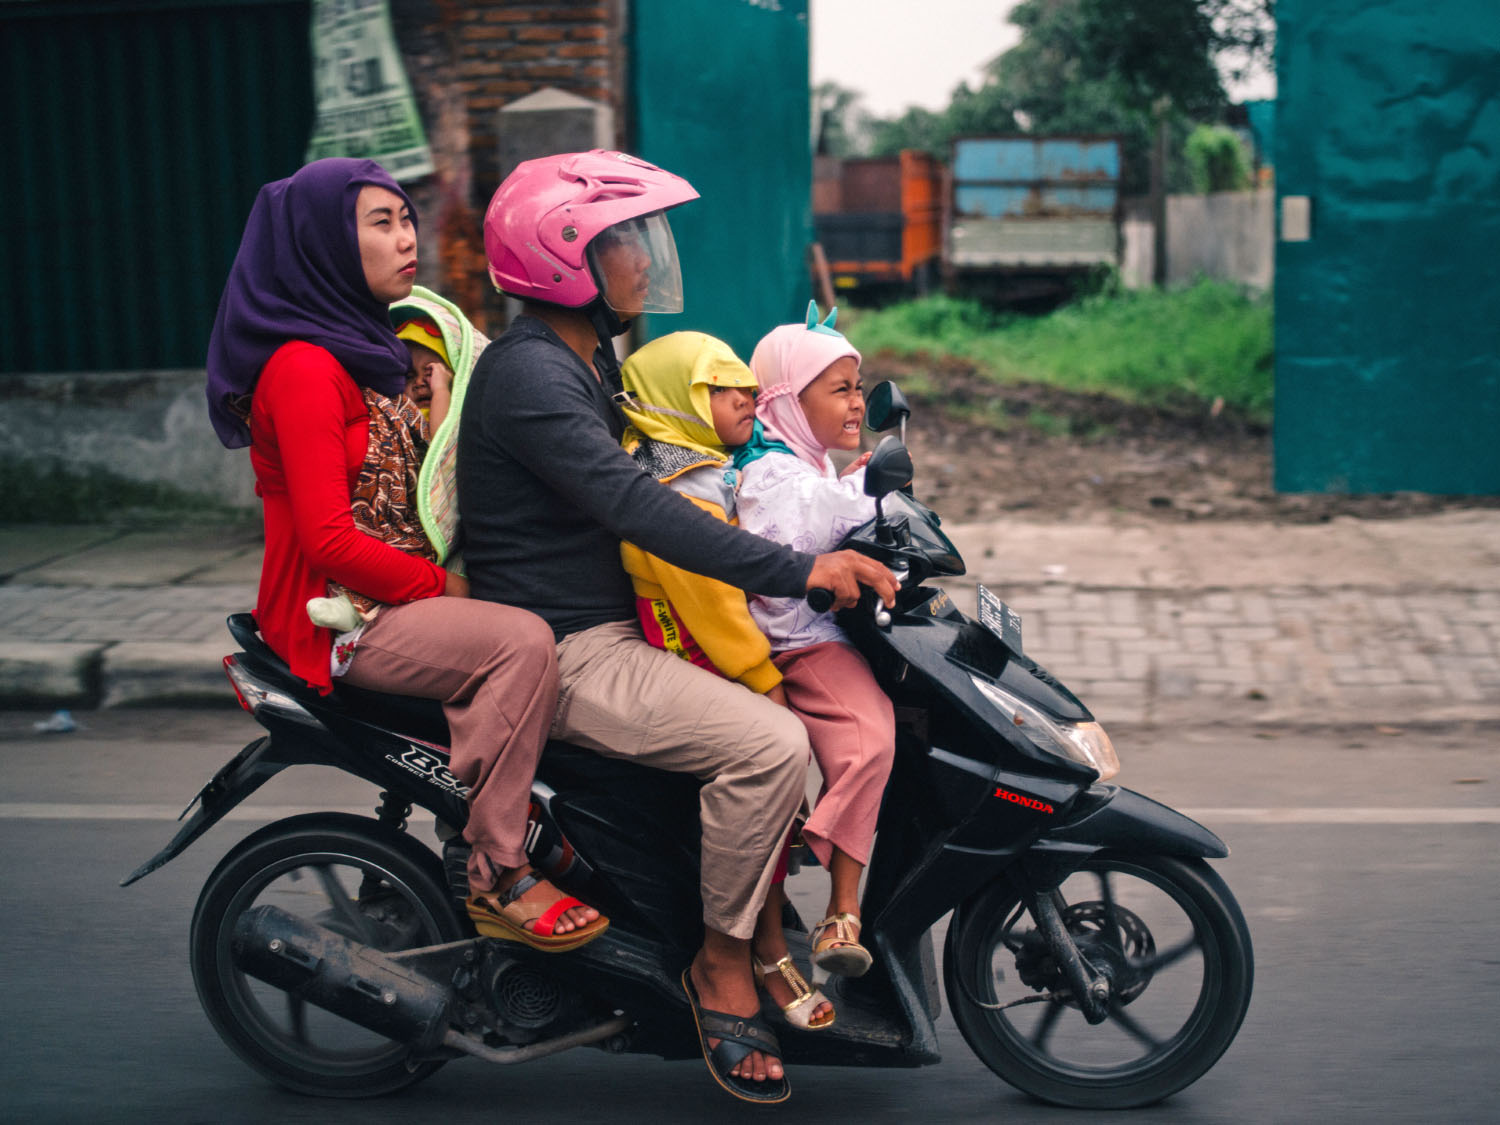 family on a motorcycle